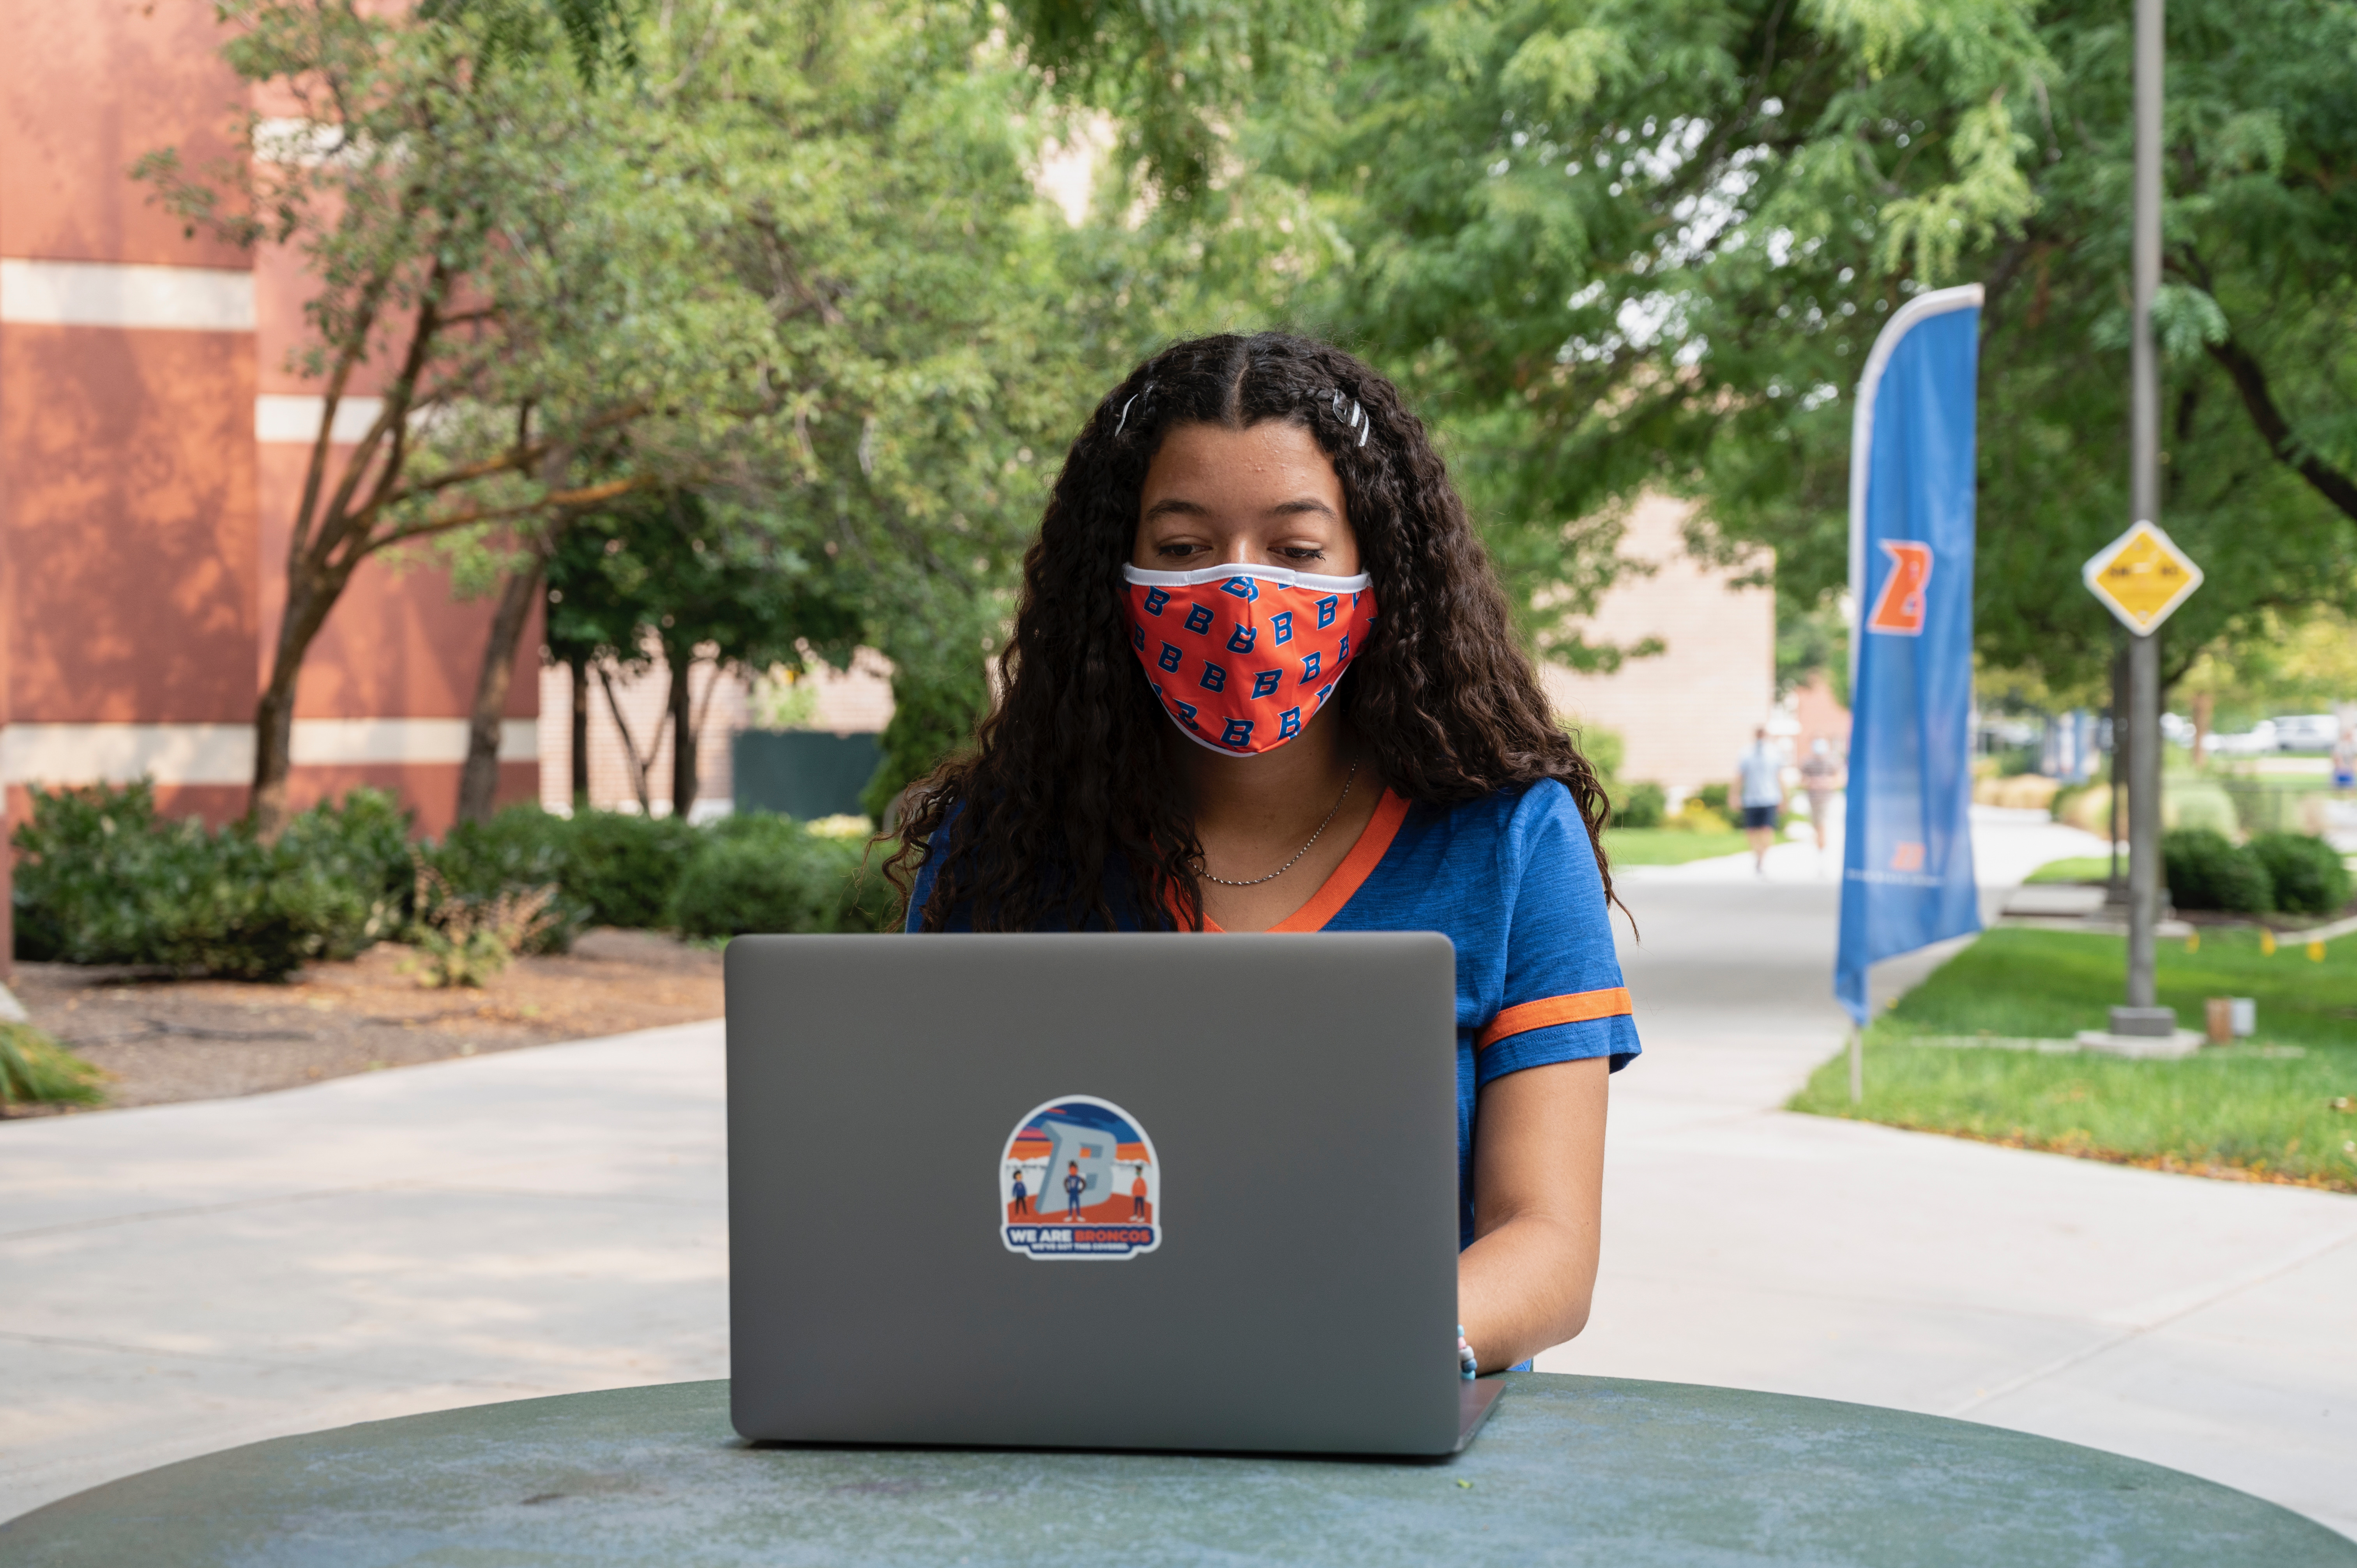 Female student wearing facial covering sits outside on campus and works on laptop